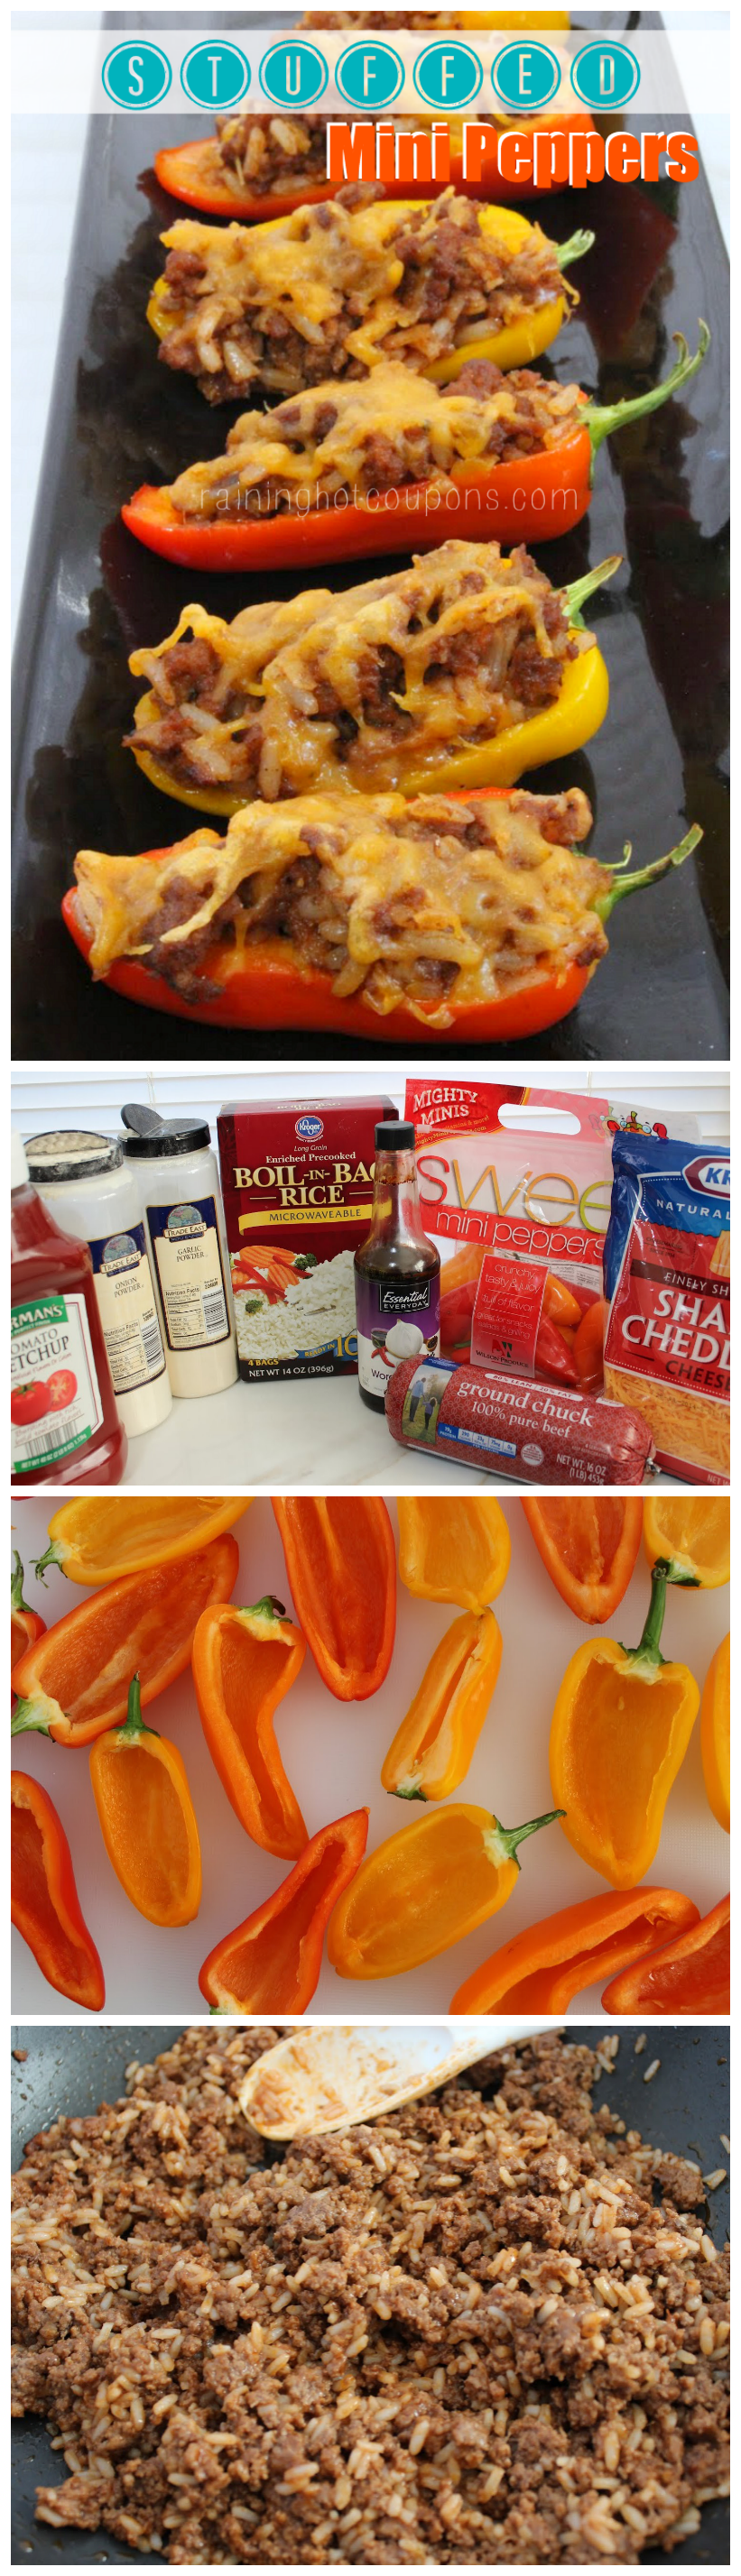 stuffed mini peppers collage.png